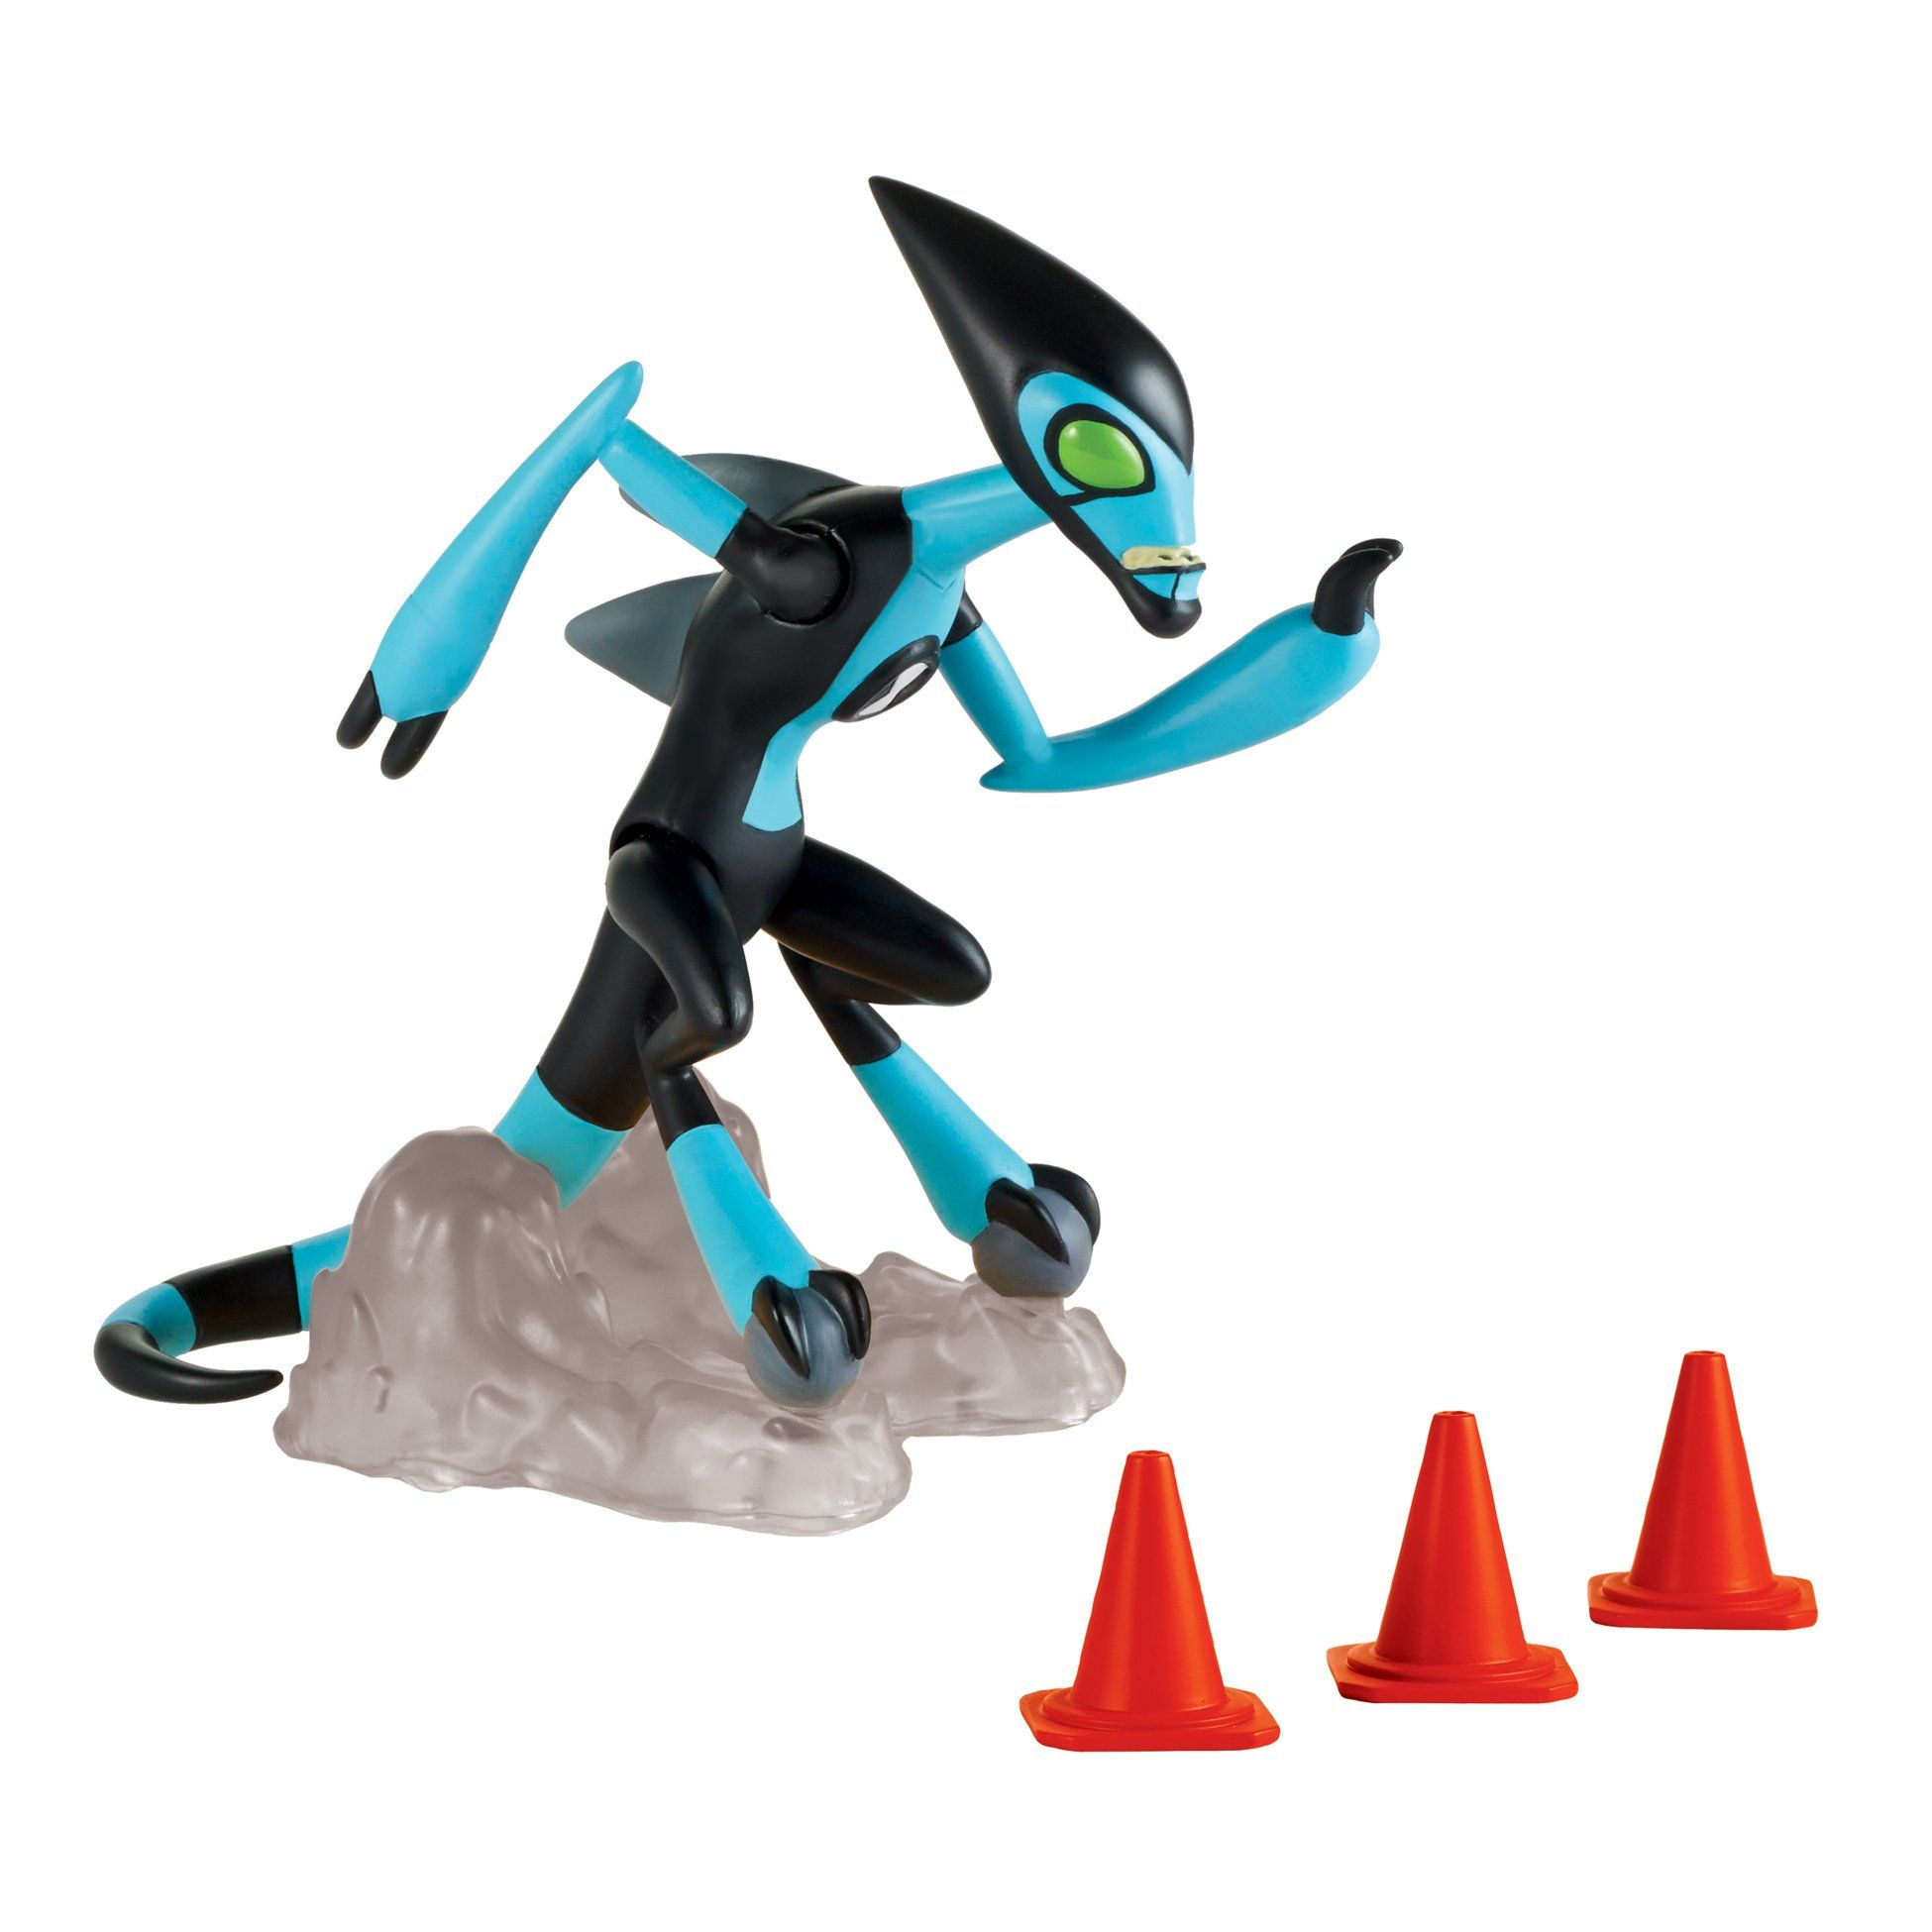 Ben 10 Xlr8 Basic Action Figure The Fastest Alien Of Them All